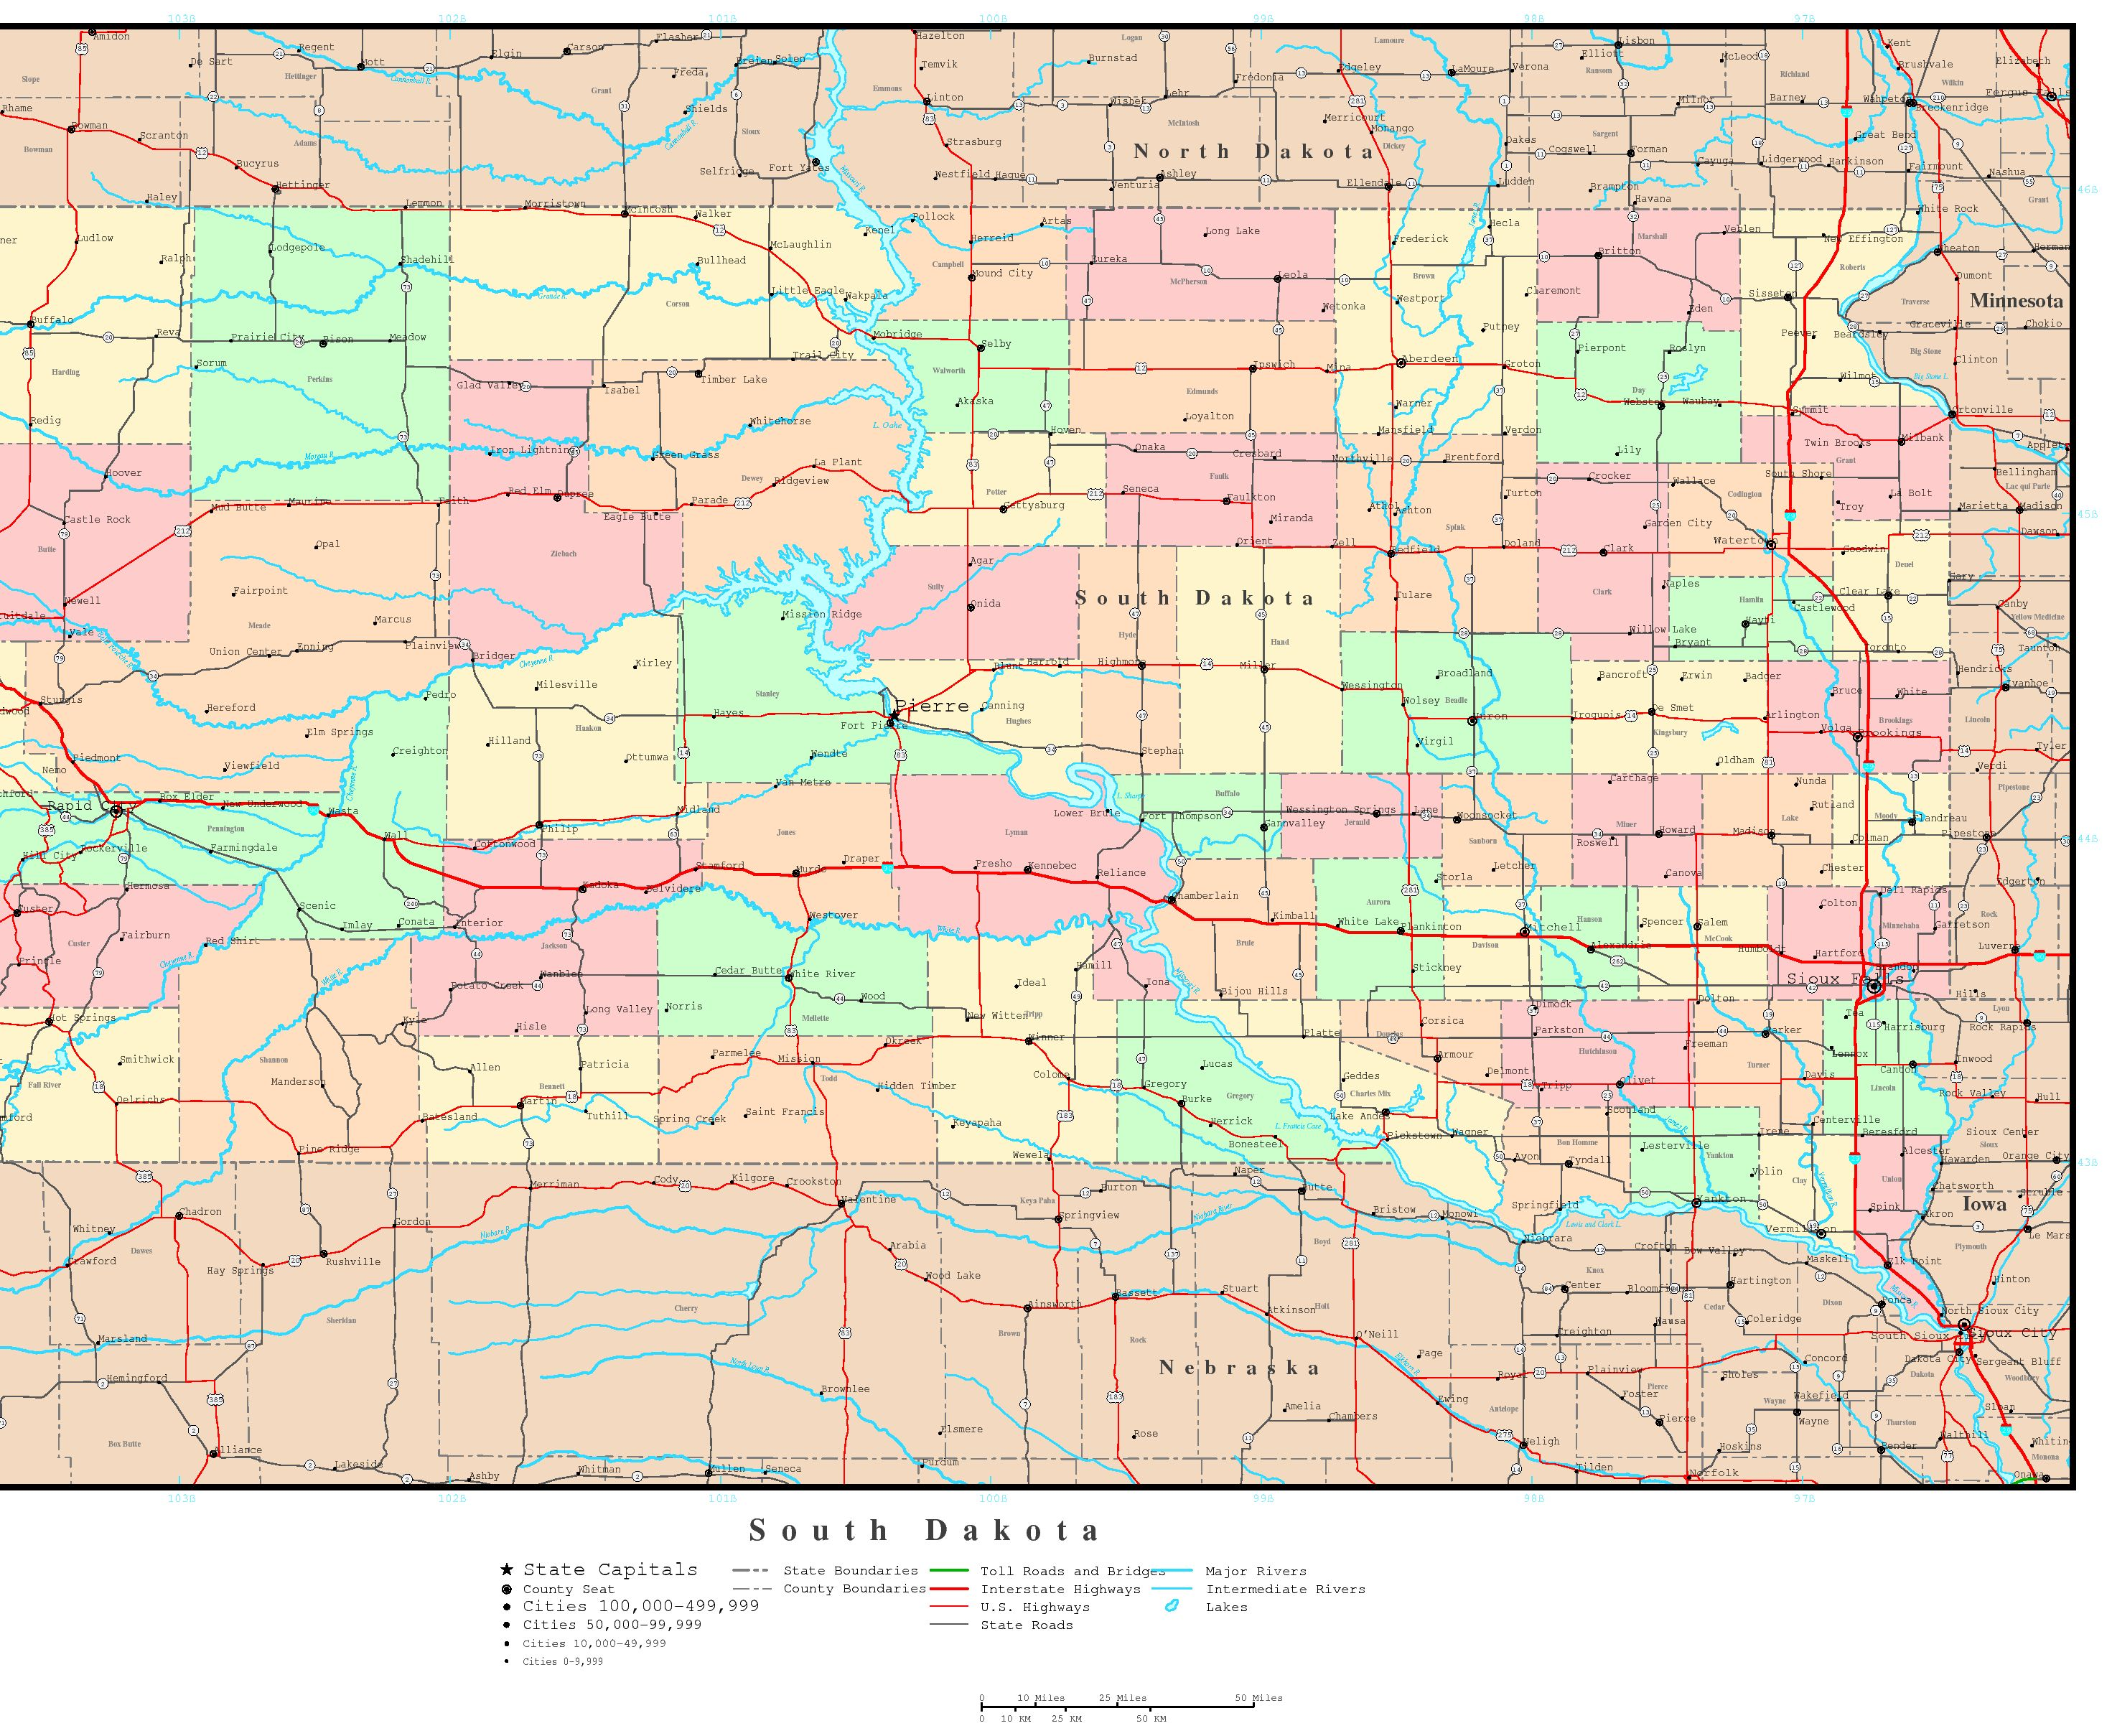 South Dakota Political Map